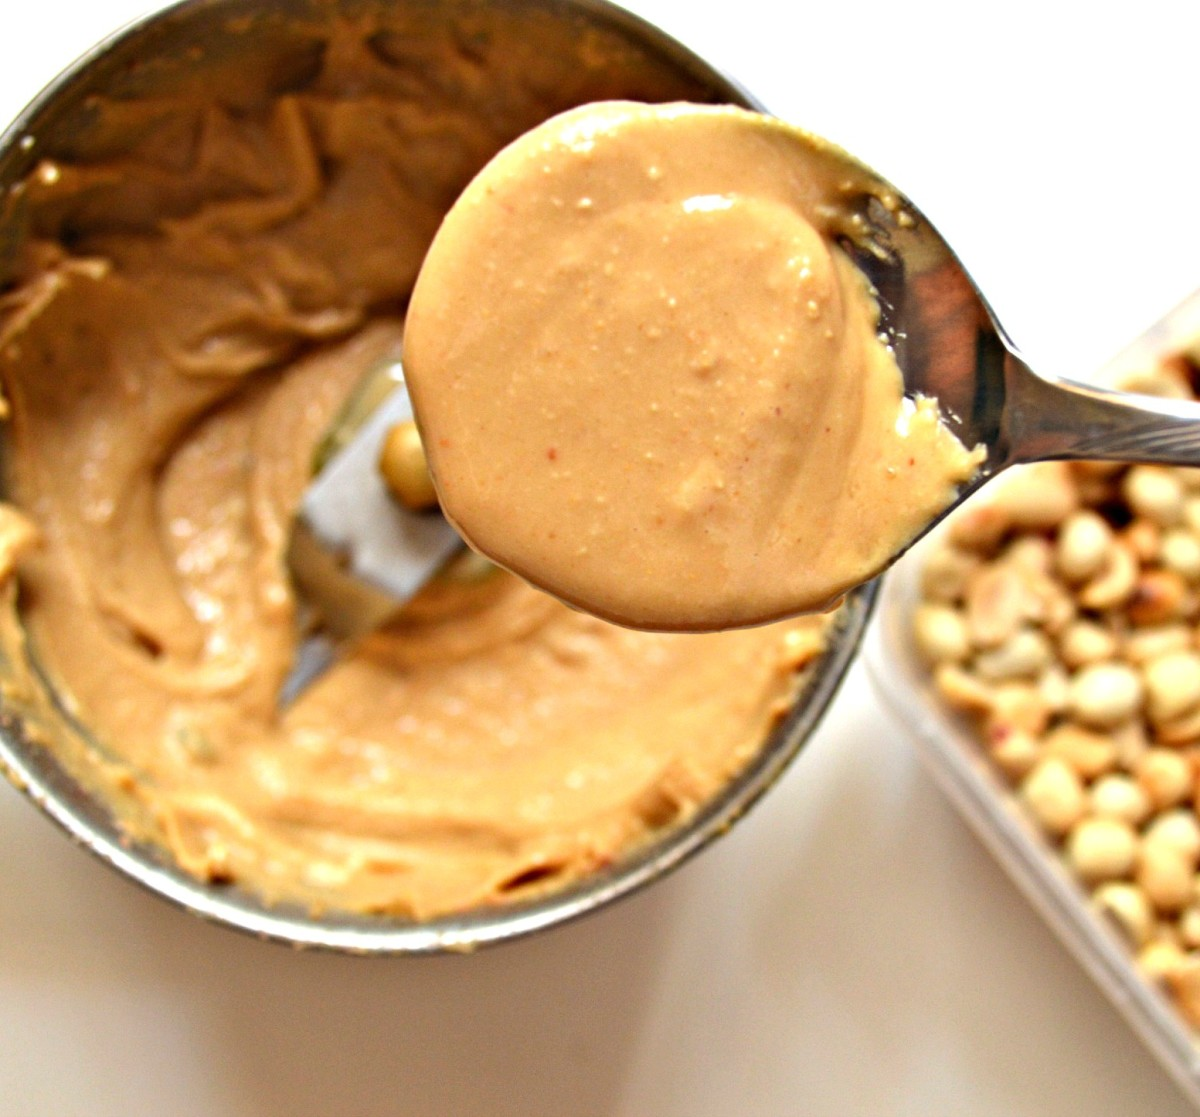 Wow! Look at that yummy spoonful of peanut butter! Yes, I licked it up right after I took that photo!